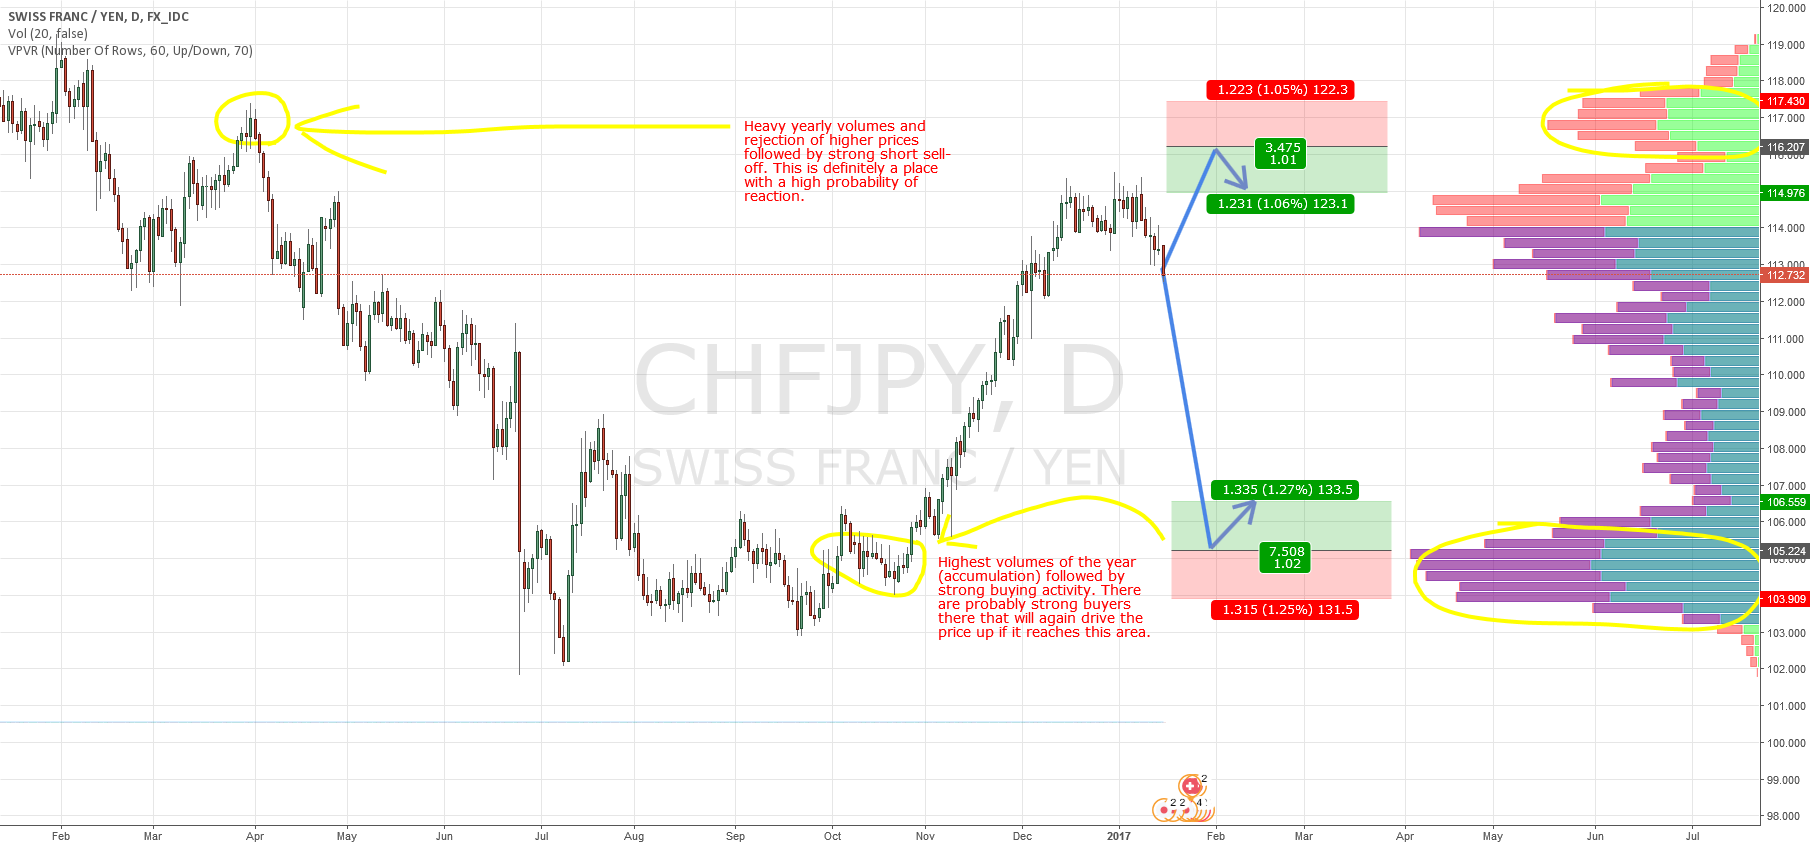 CHF/JPY swings based on Market Profile and Price Action